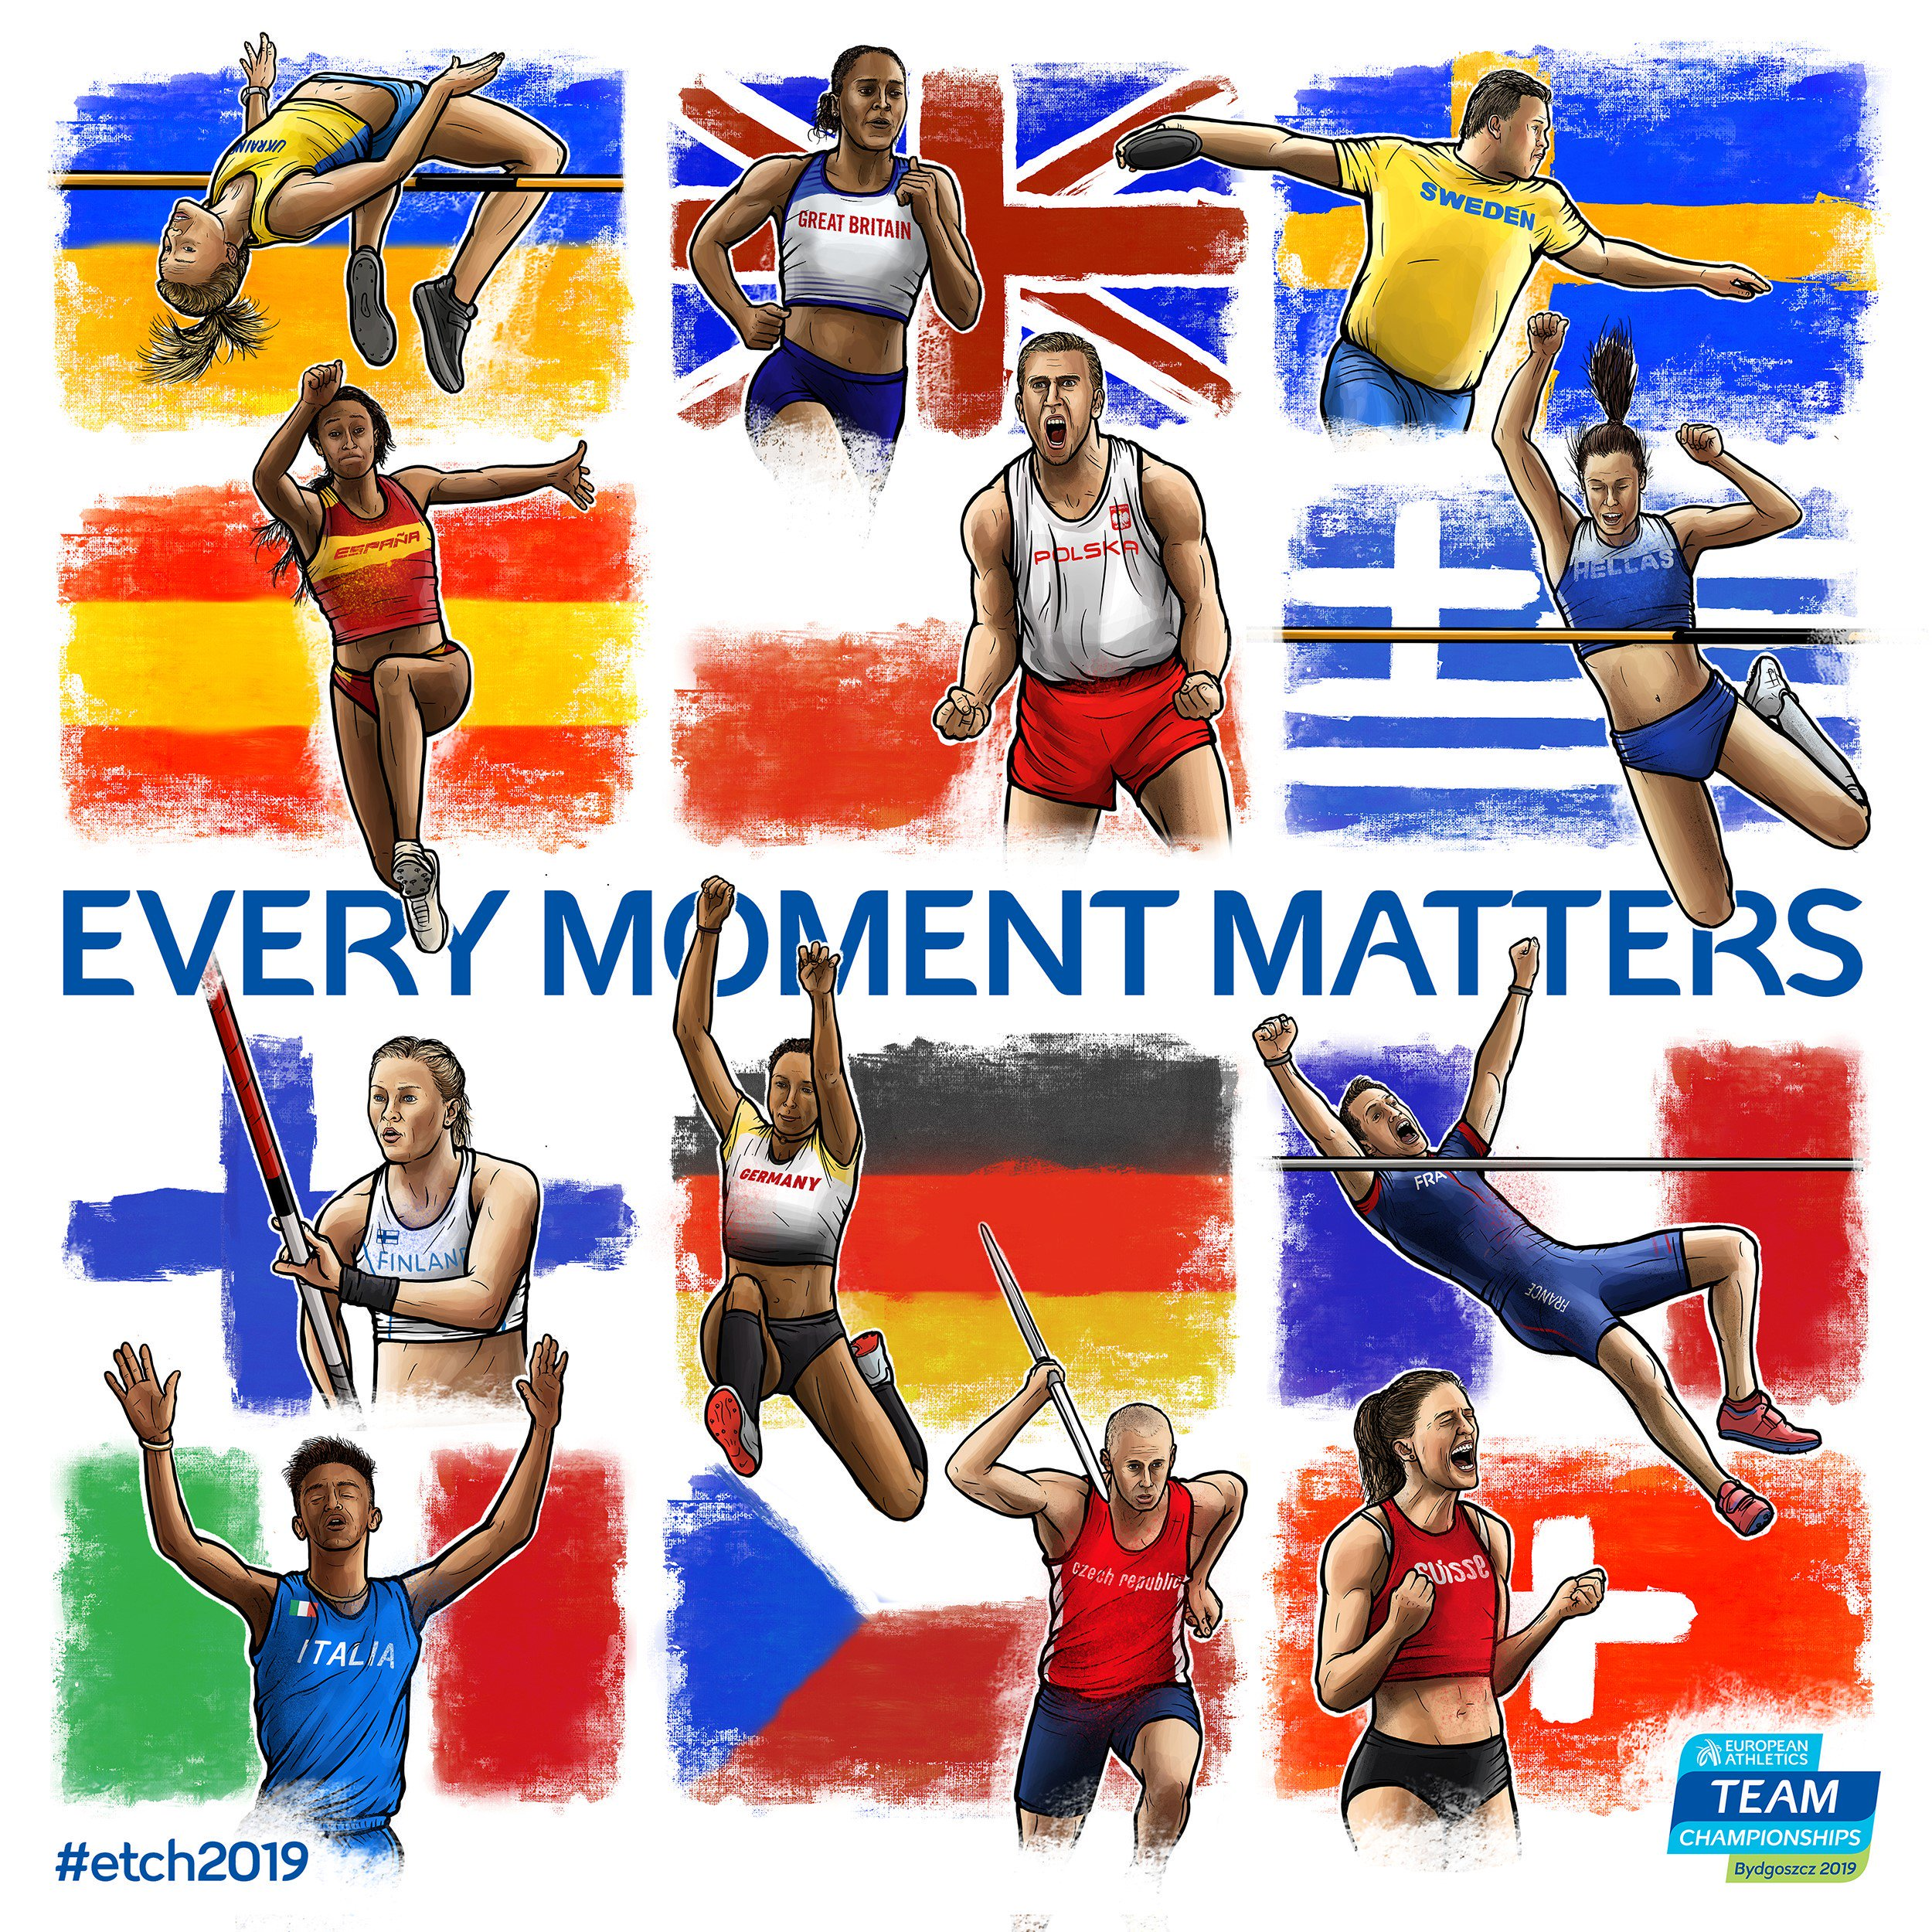 Bydgoszcz2019 european athletics super liga 2019